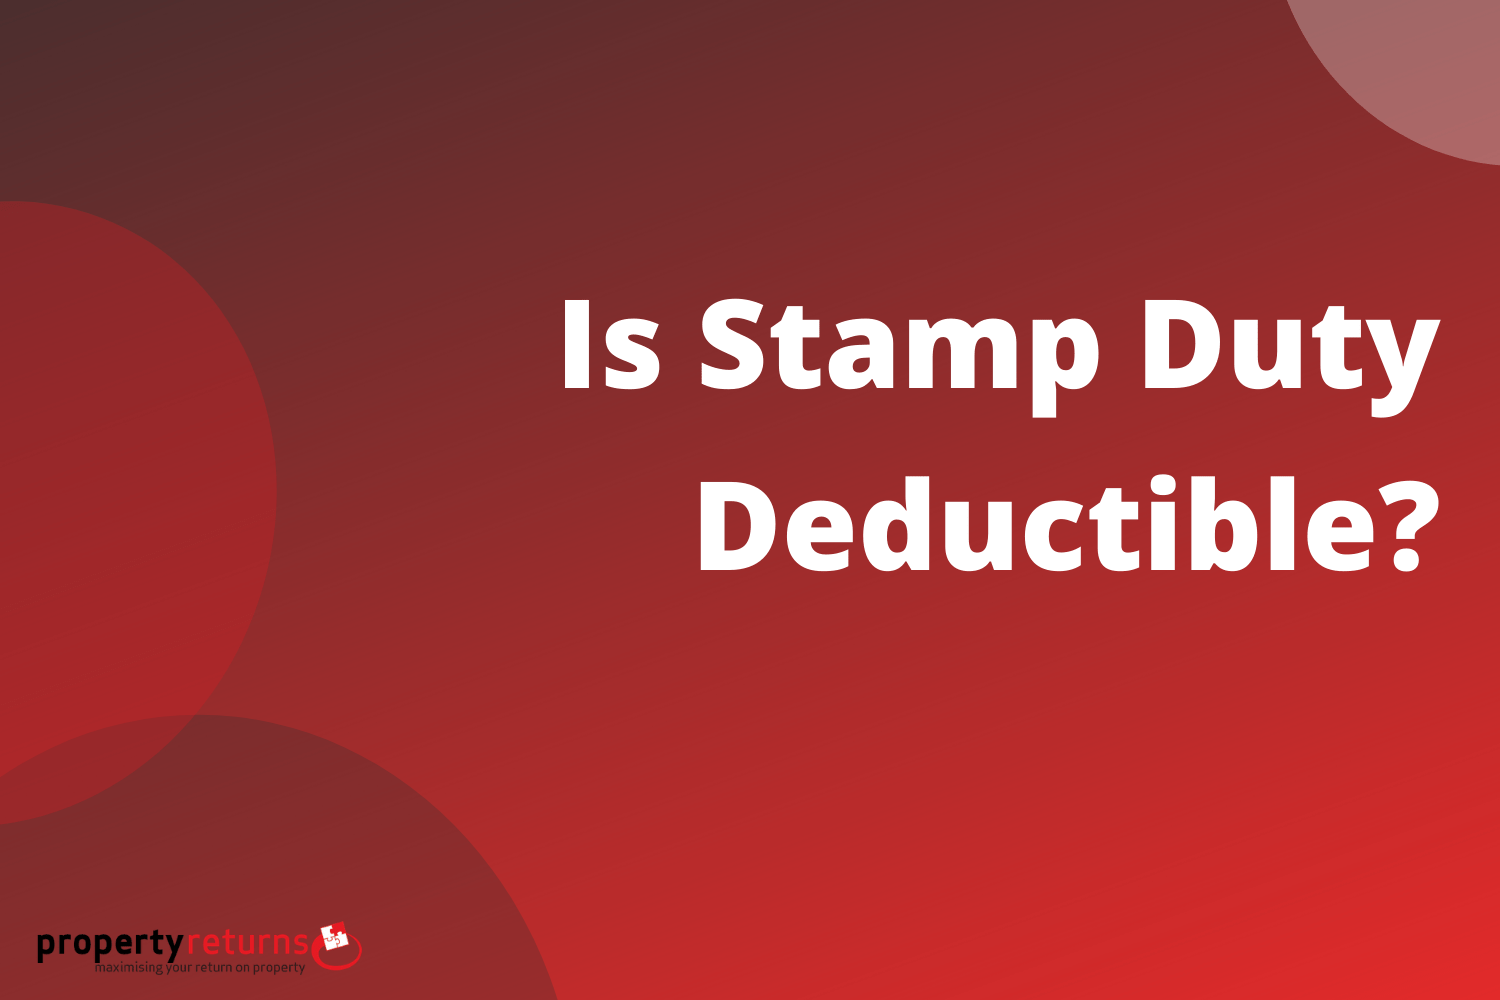 is stamp duty deductible cover image